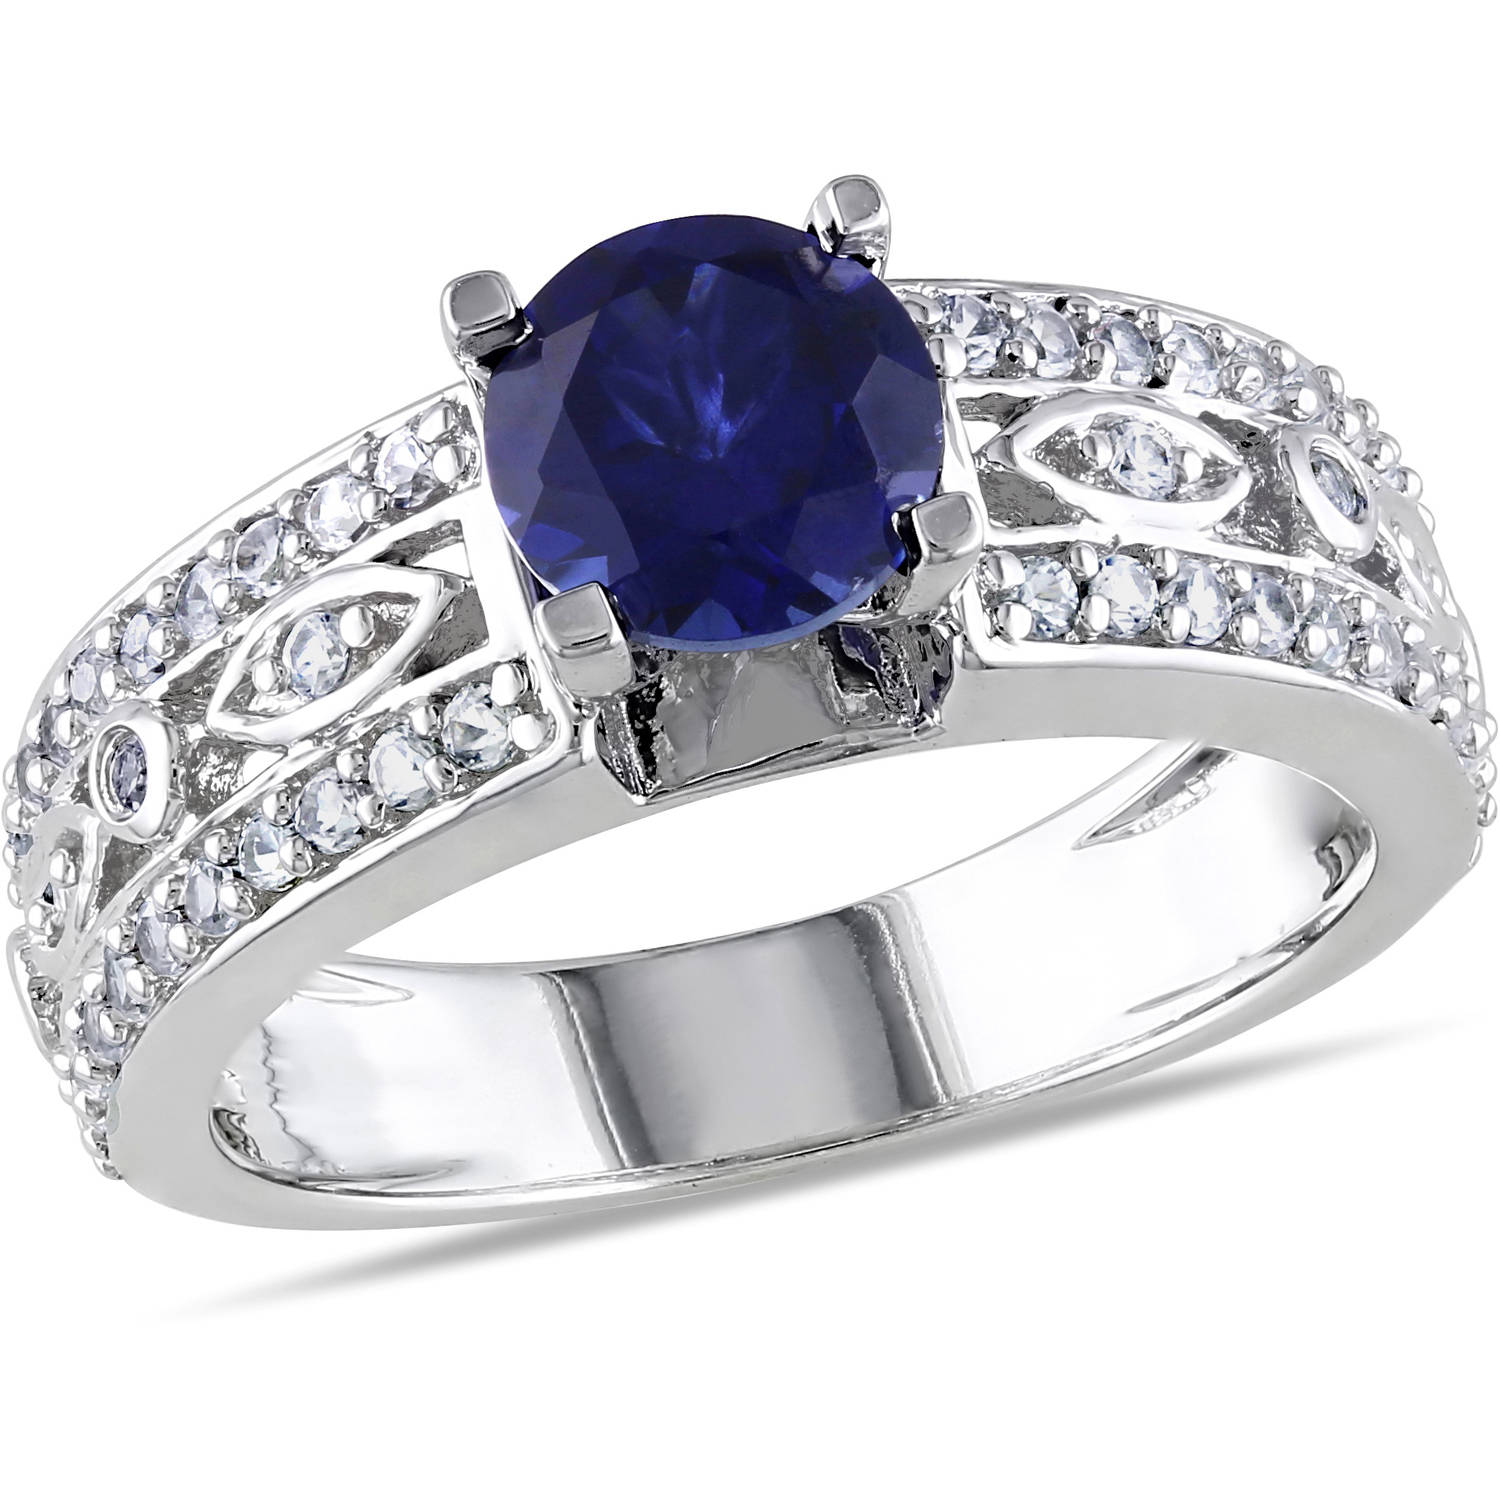 Tangelo Miabella 1-3/4 Carat T.G.W. Blue and White Sapphire Sterling Silver Engagement Ring